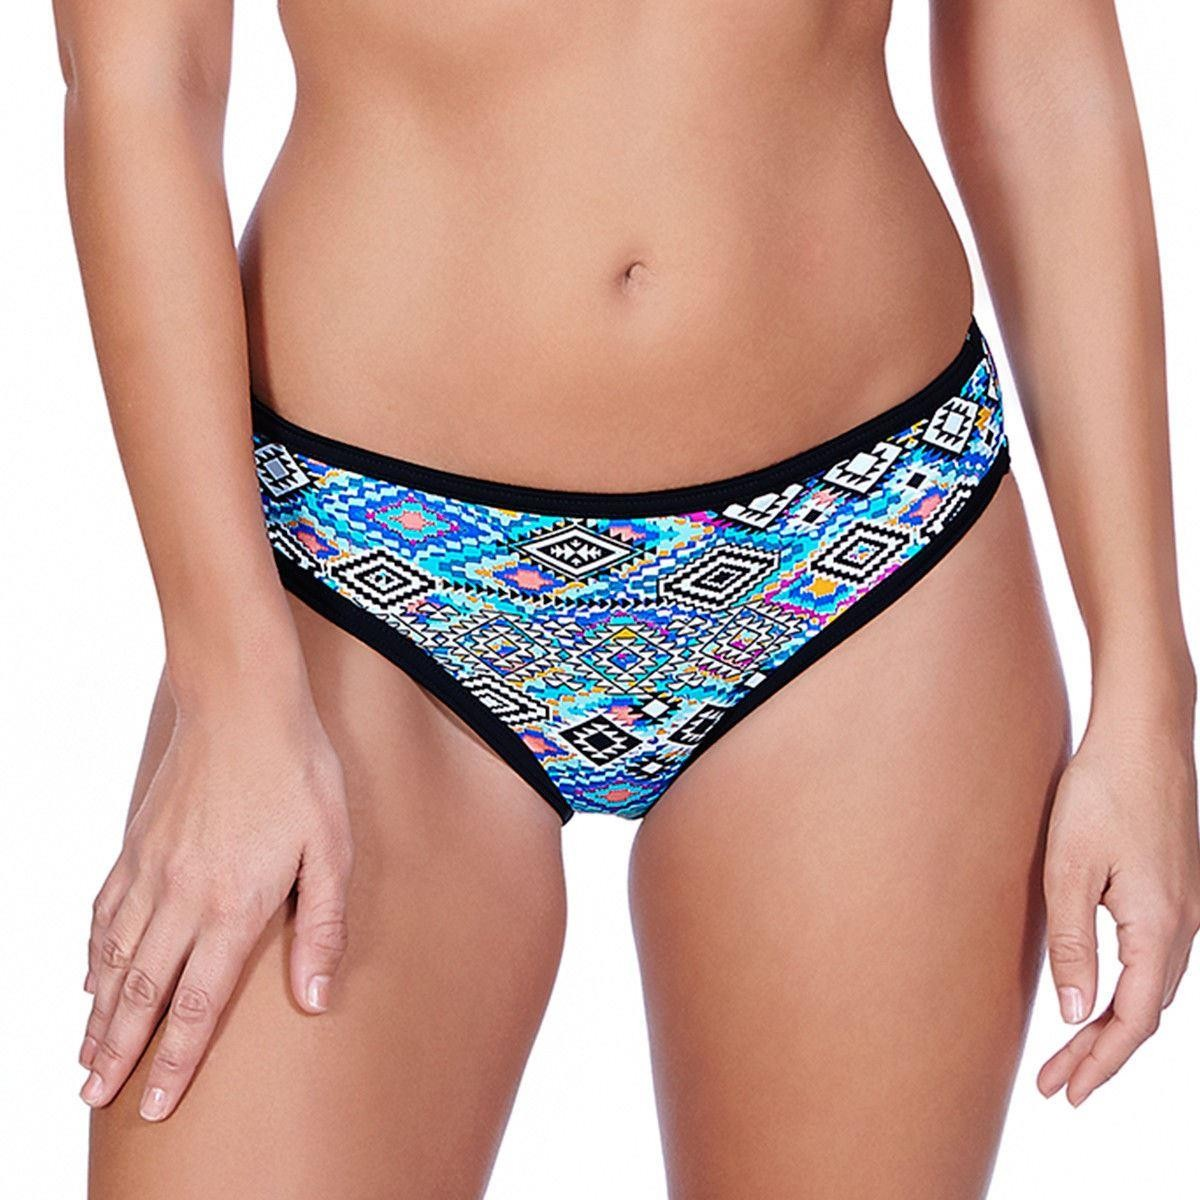 Freya Folklore Hipster Bikini Brief - Multi